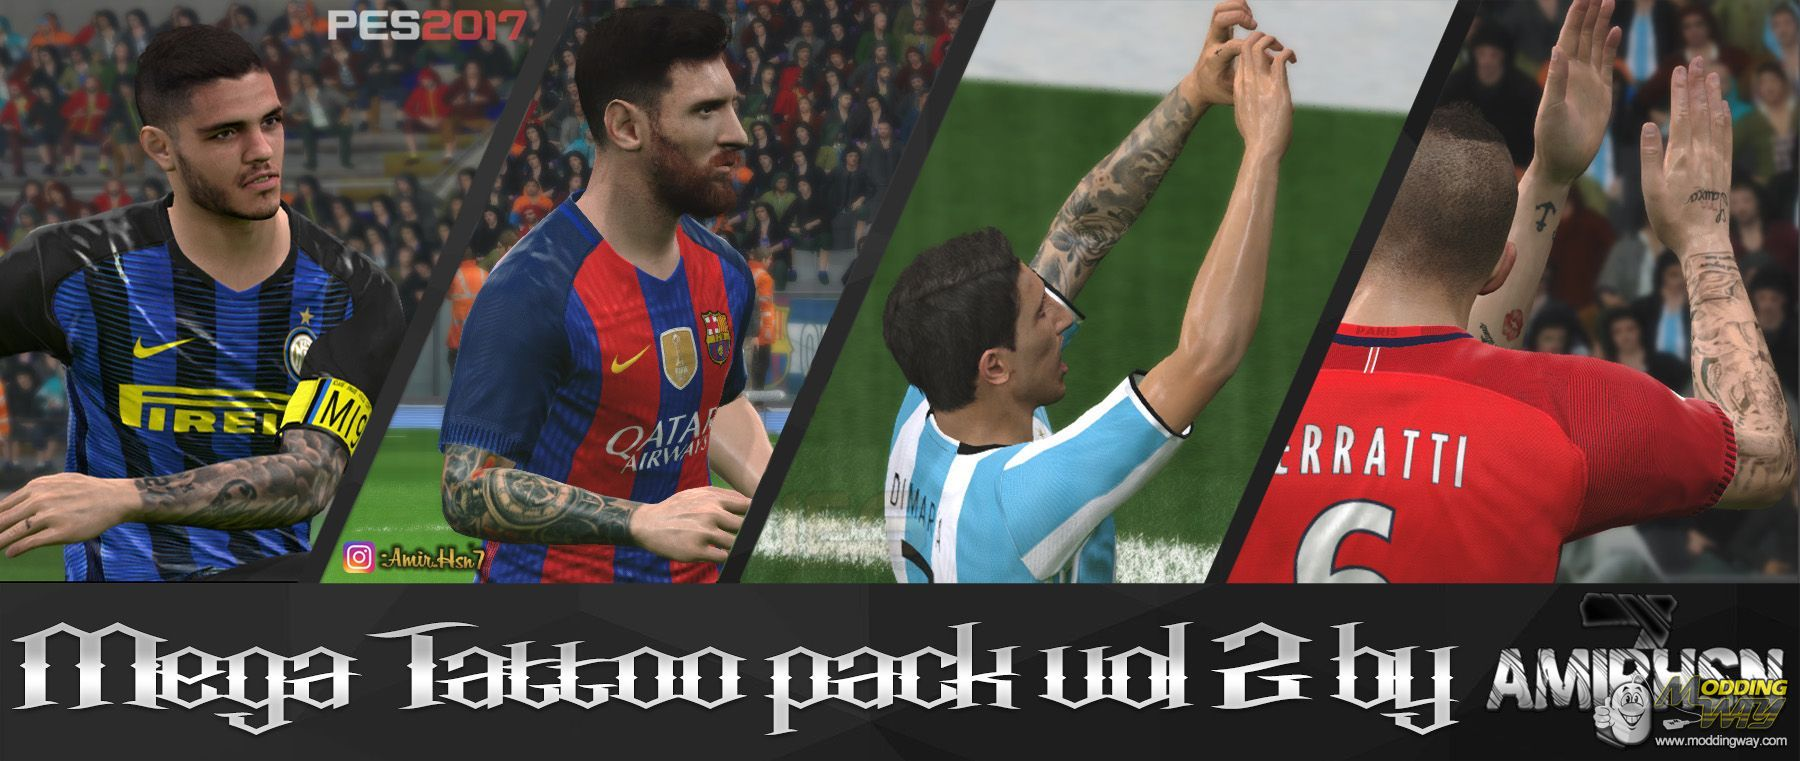 download patch pes 2017 google drive